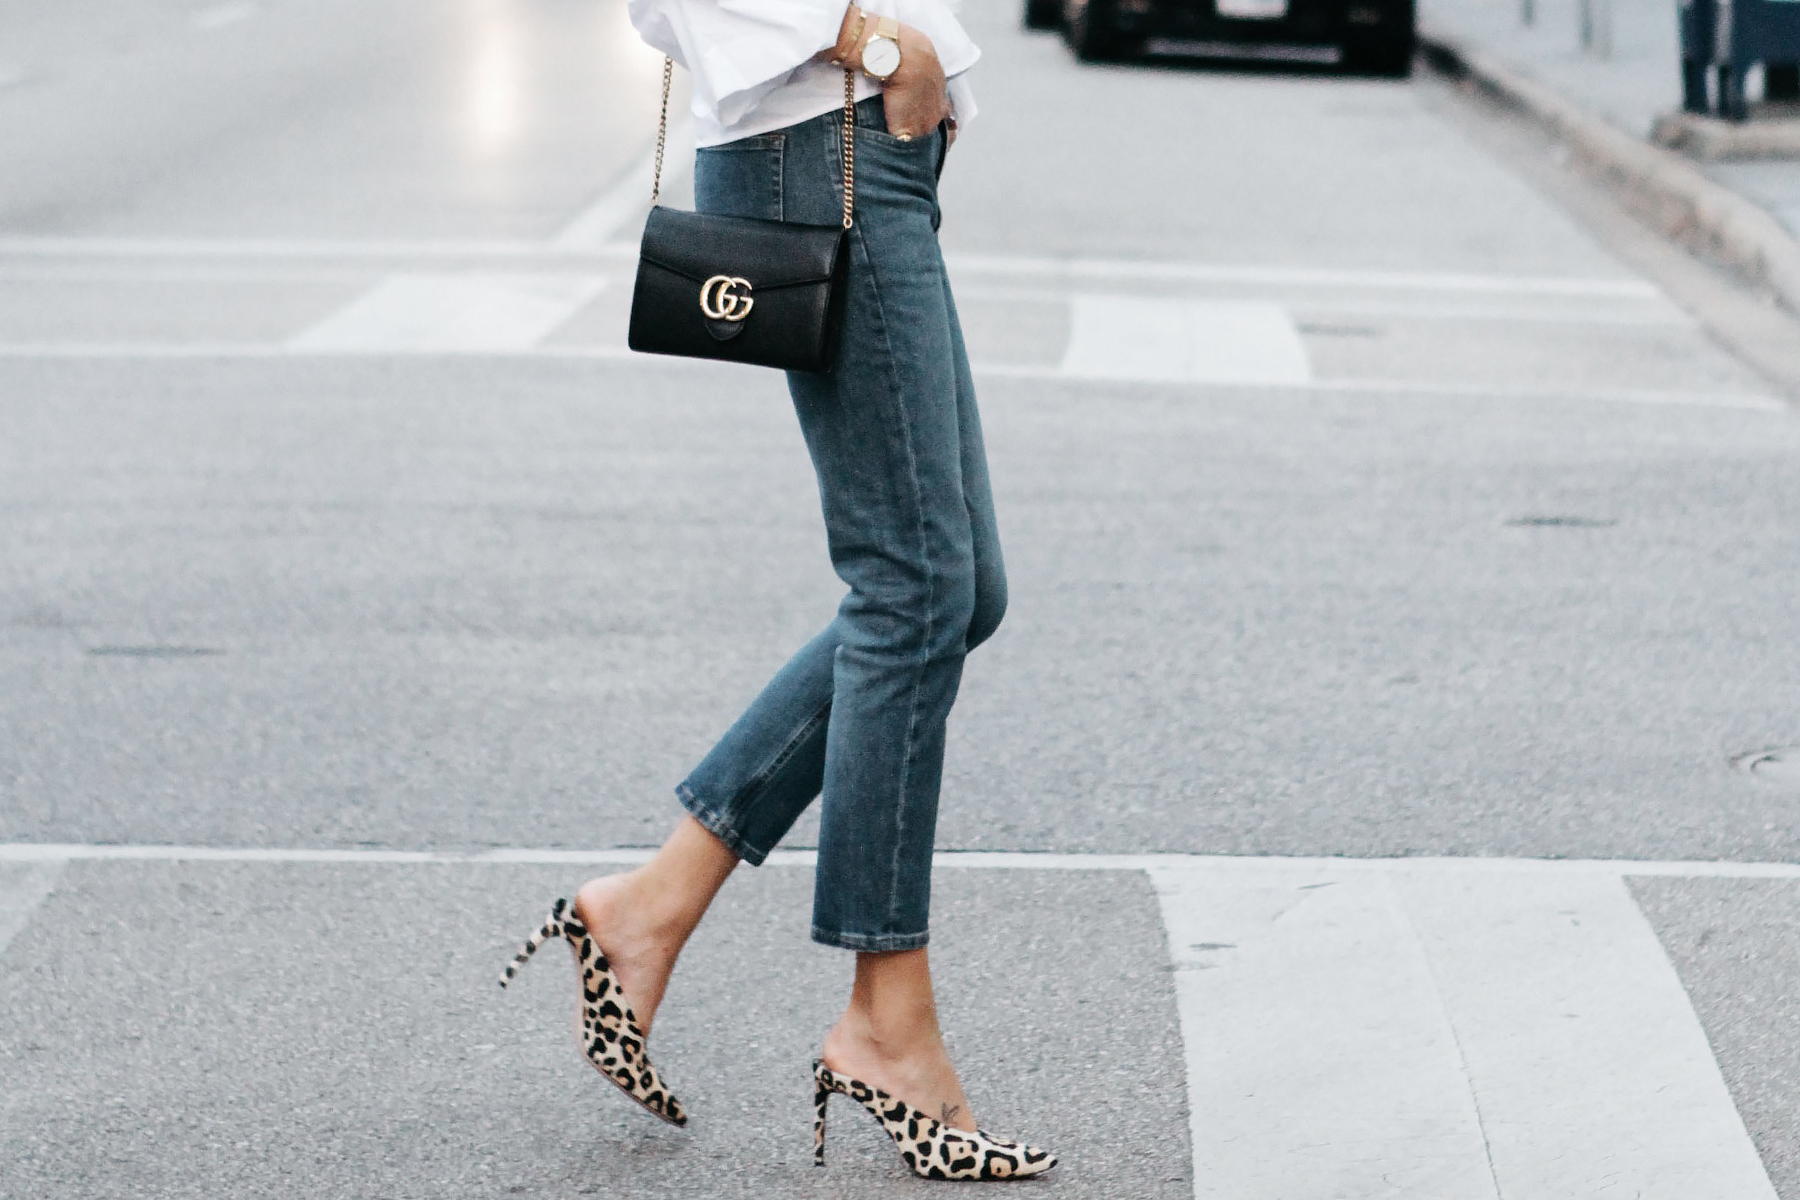 Gucci Marmont Handbag Everlane Boyfriend Jeans Club Monaco Leopard Heels Fashion Jackson Dallas Blogger Fashion Blogger Street Style